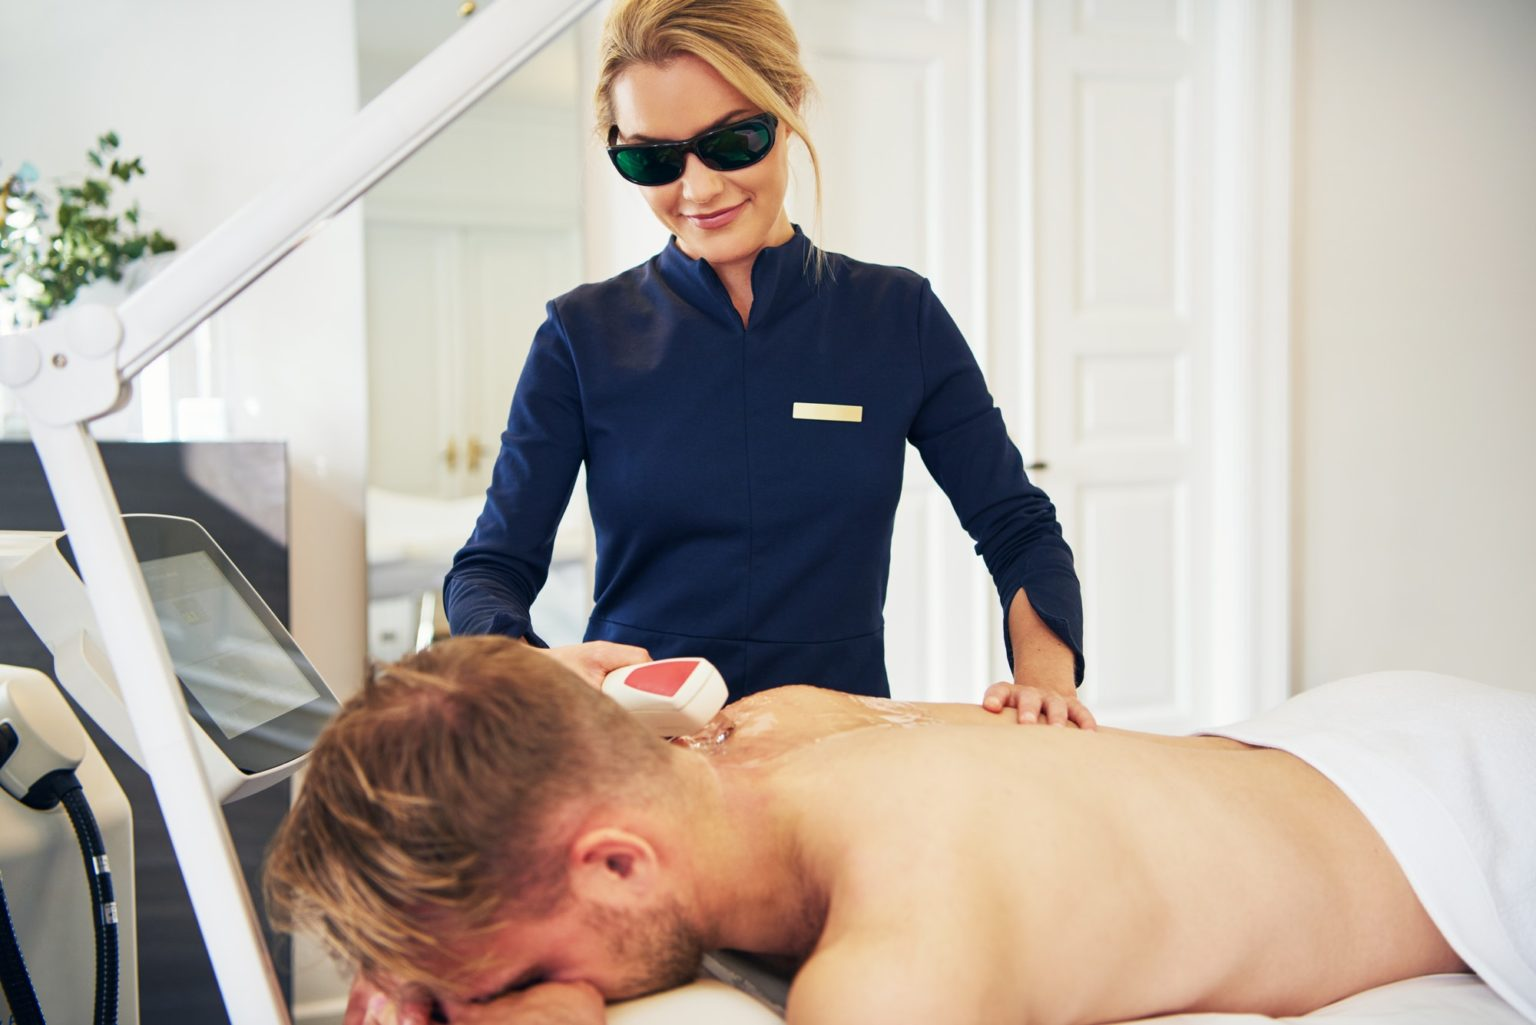 Young beautician performing laser hair removal procedure on a client